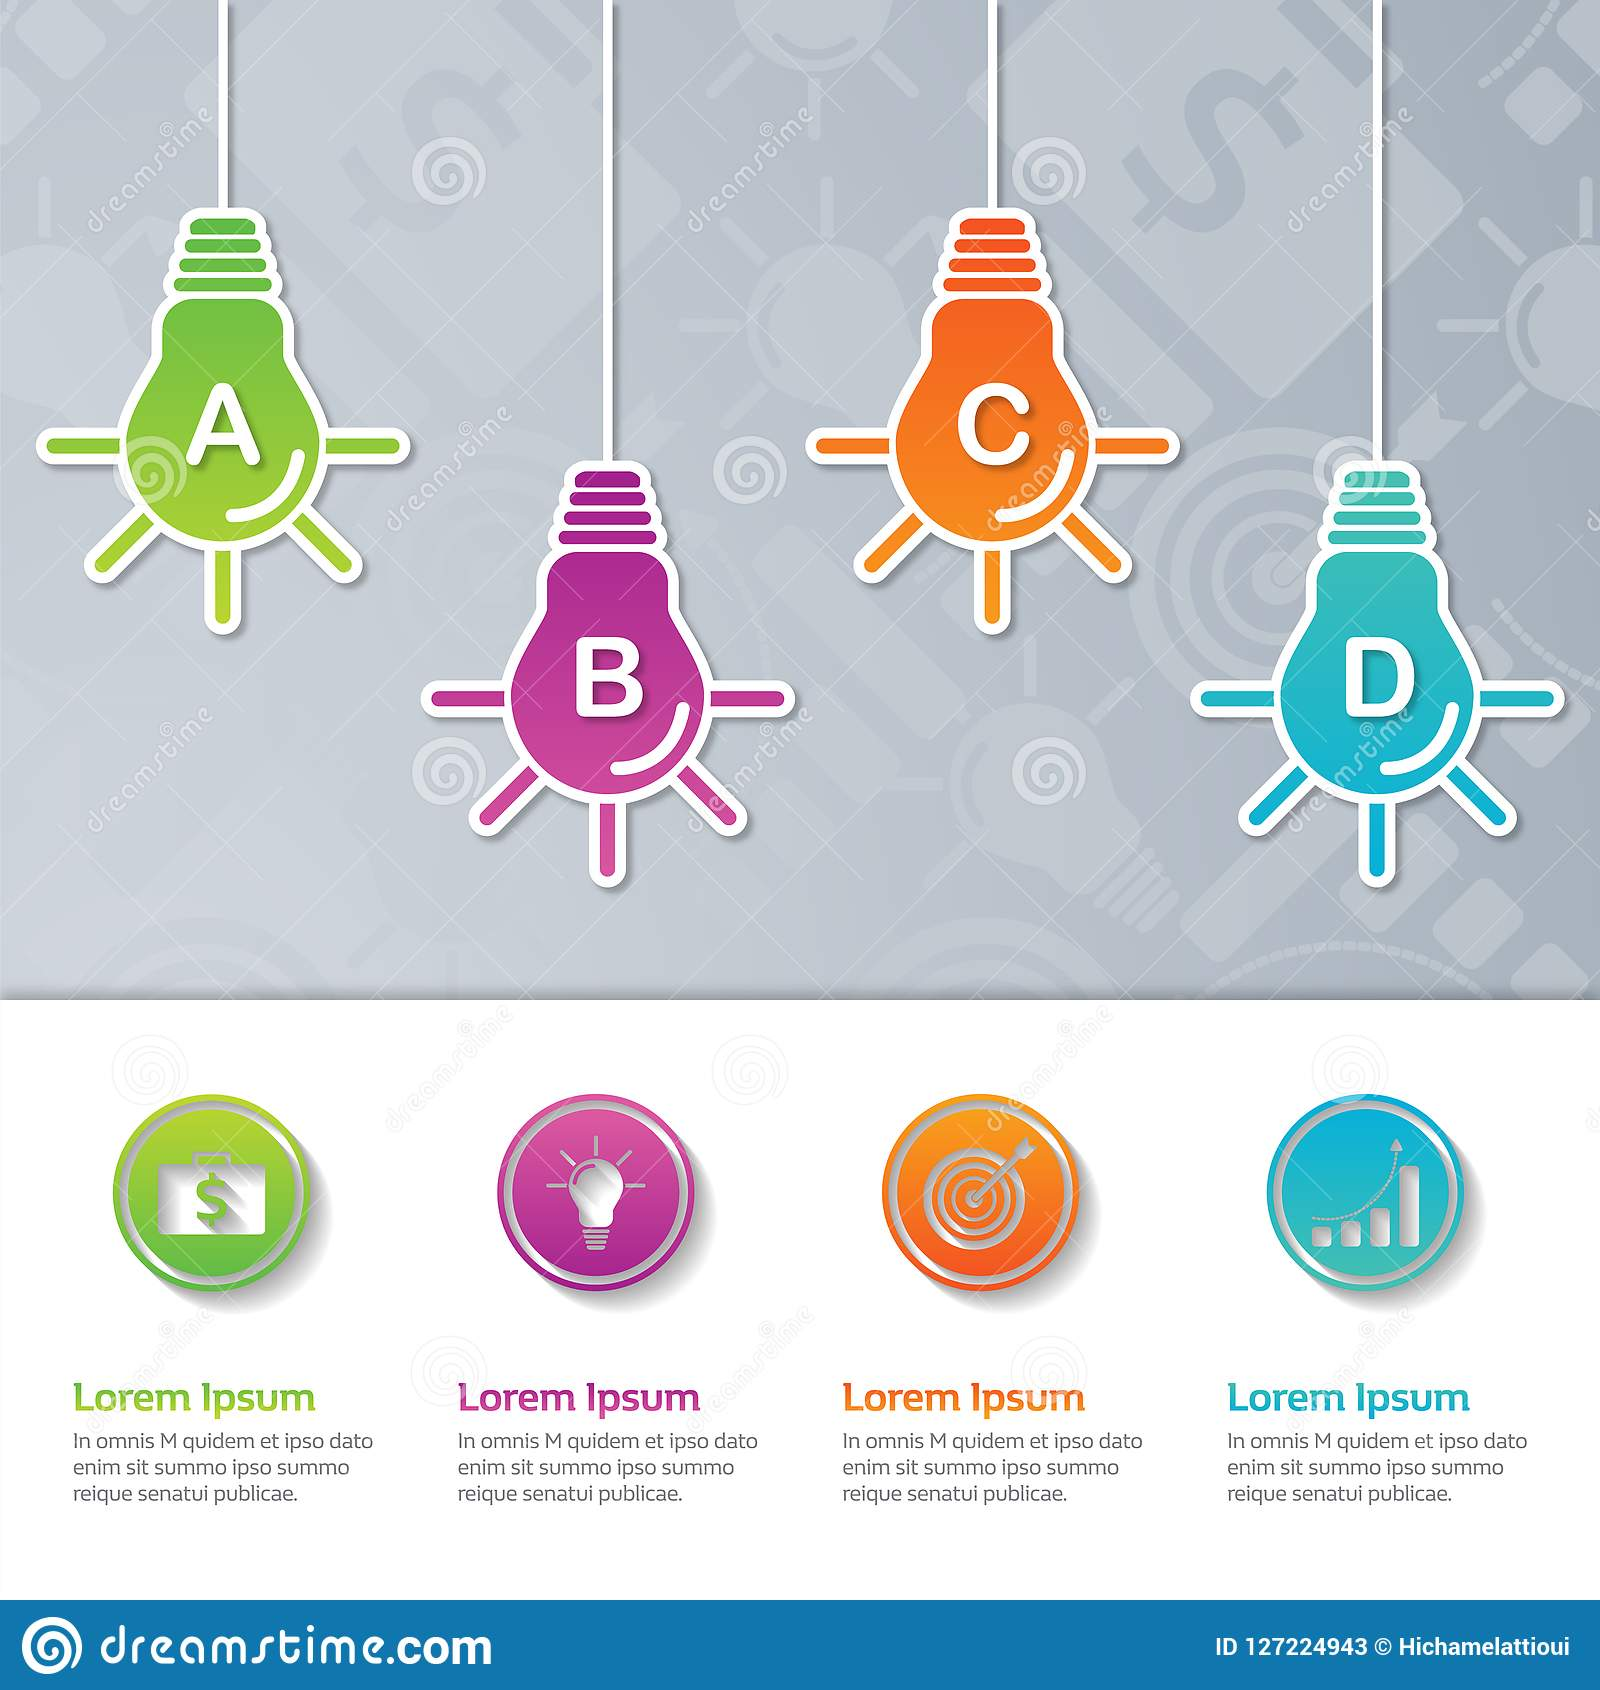 Infographic presentation template design,Business concept with 4 steps or processes,